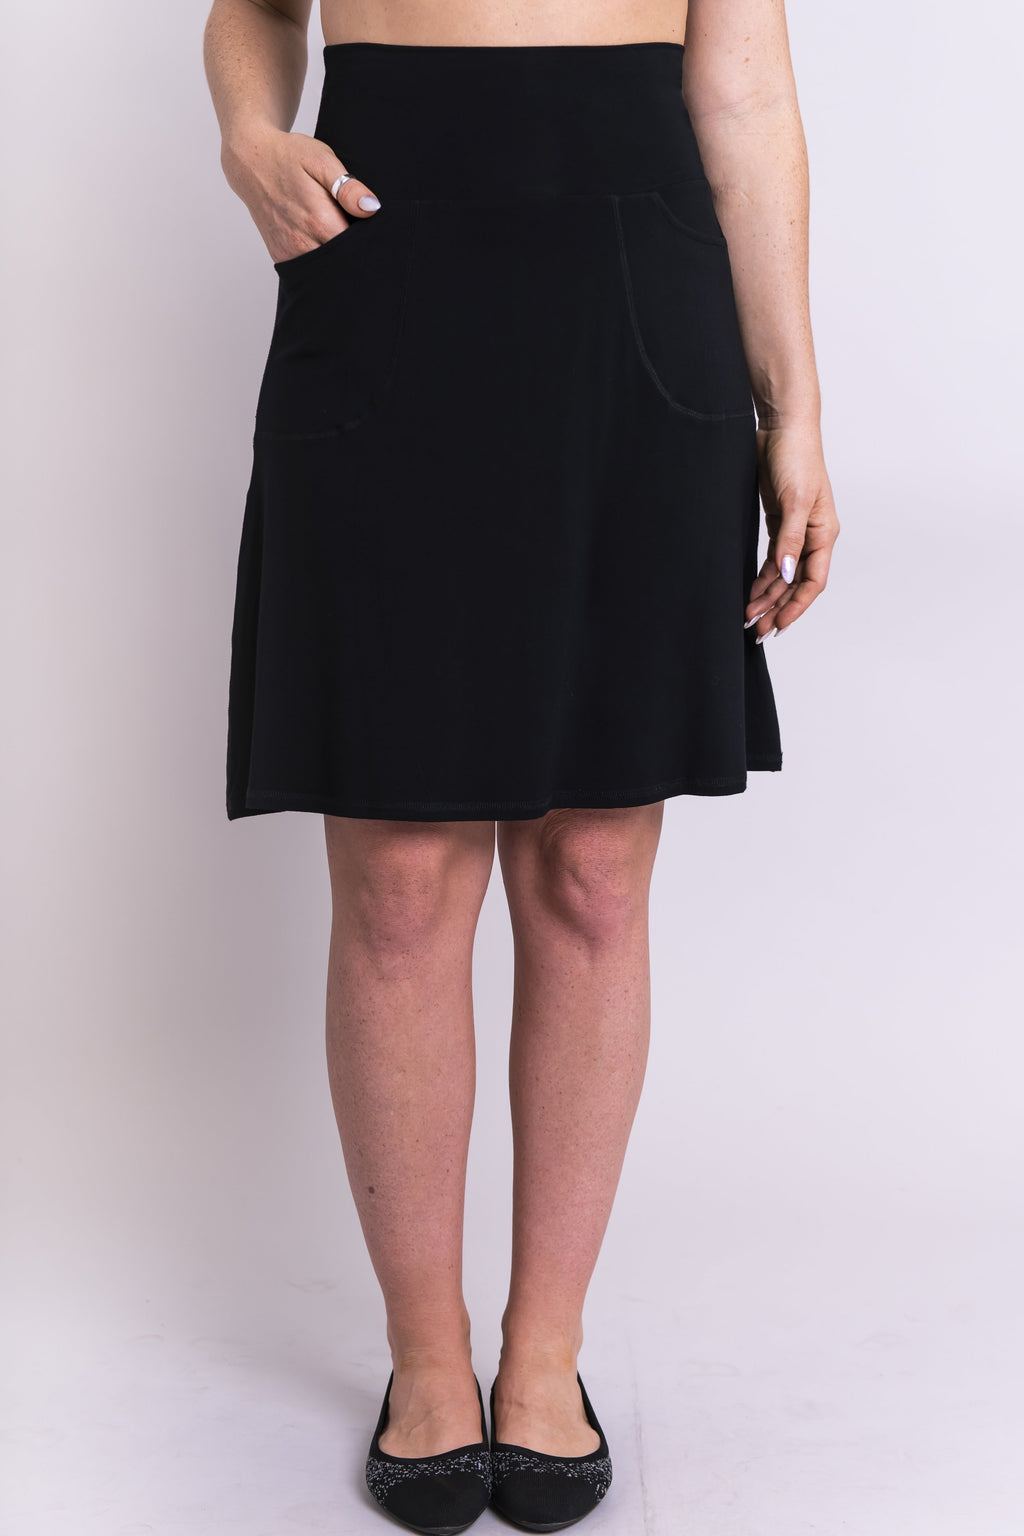 Magna Skort, Black - Blue Sky Clothing Co